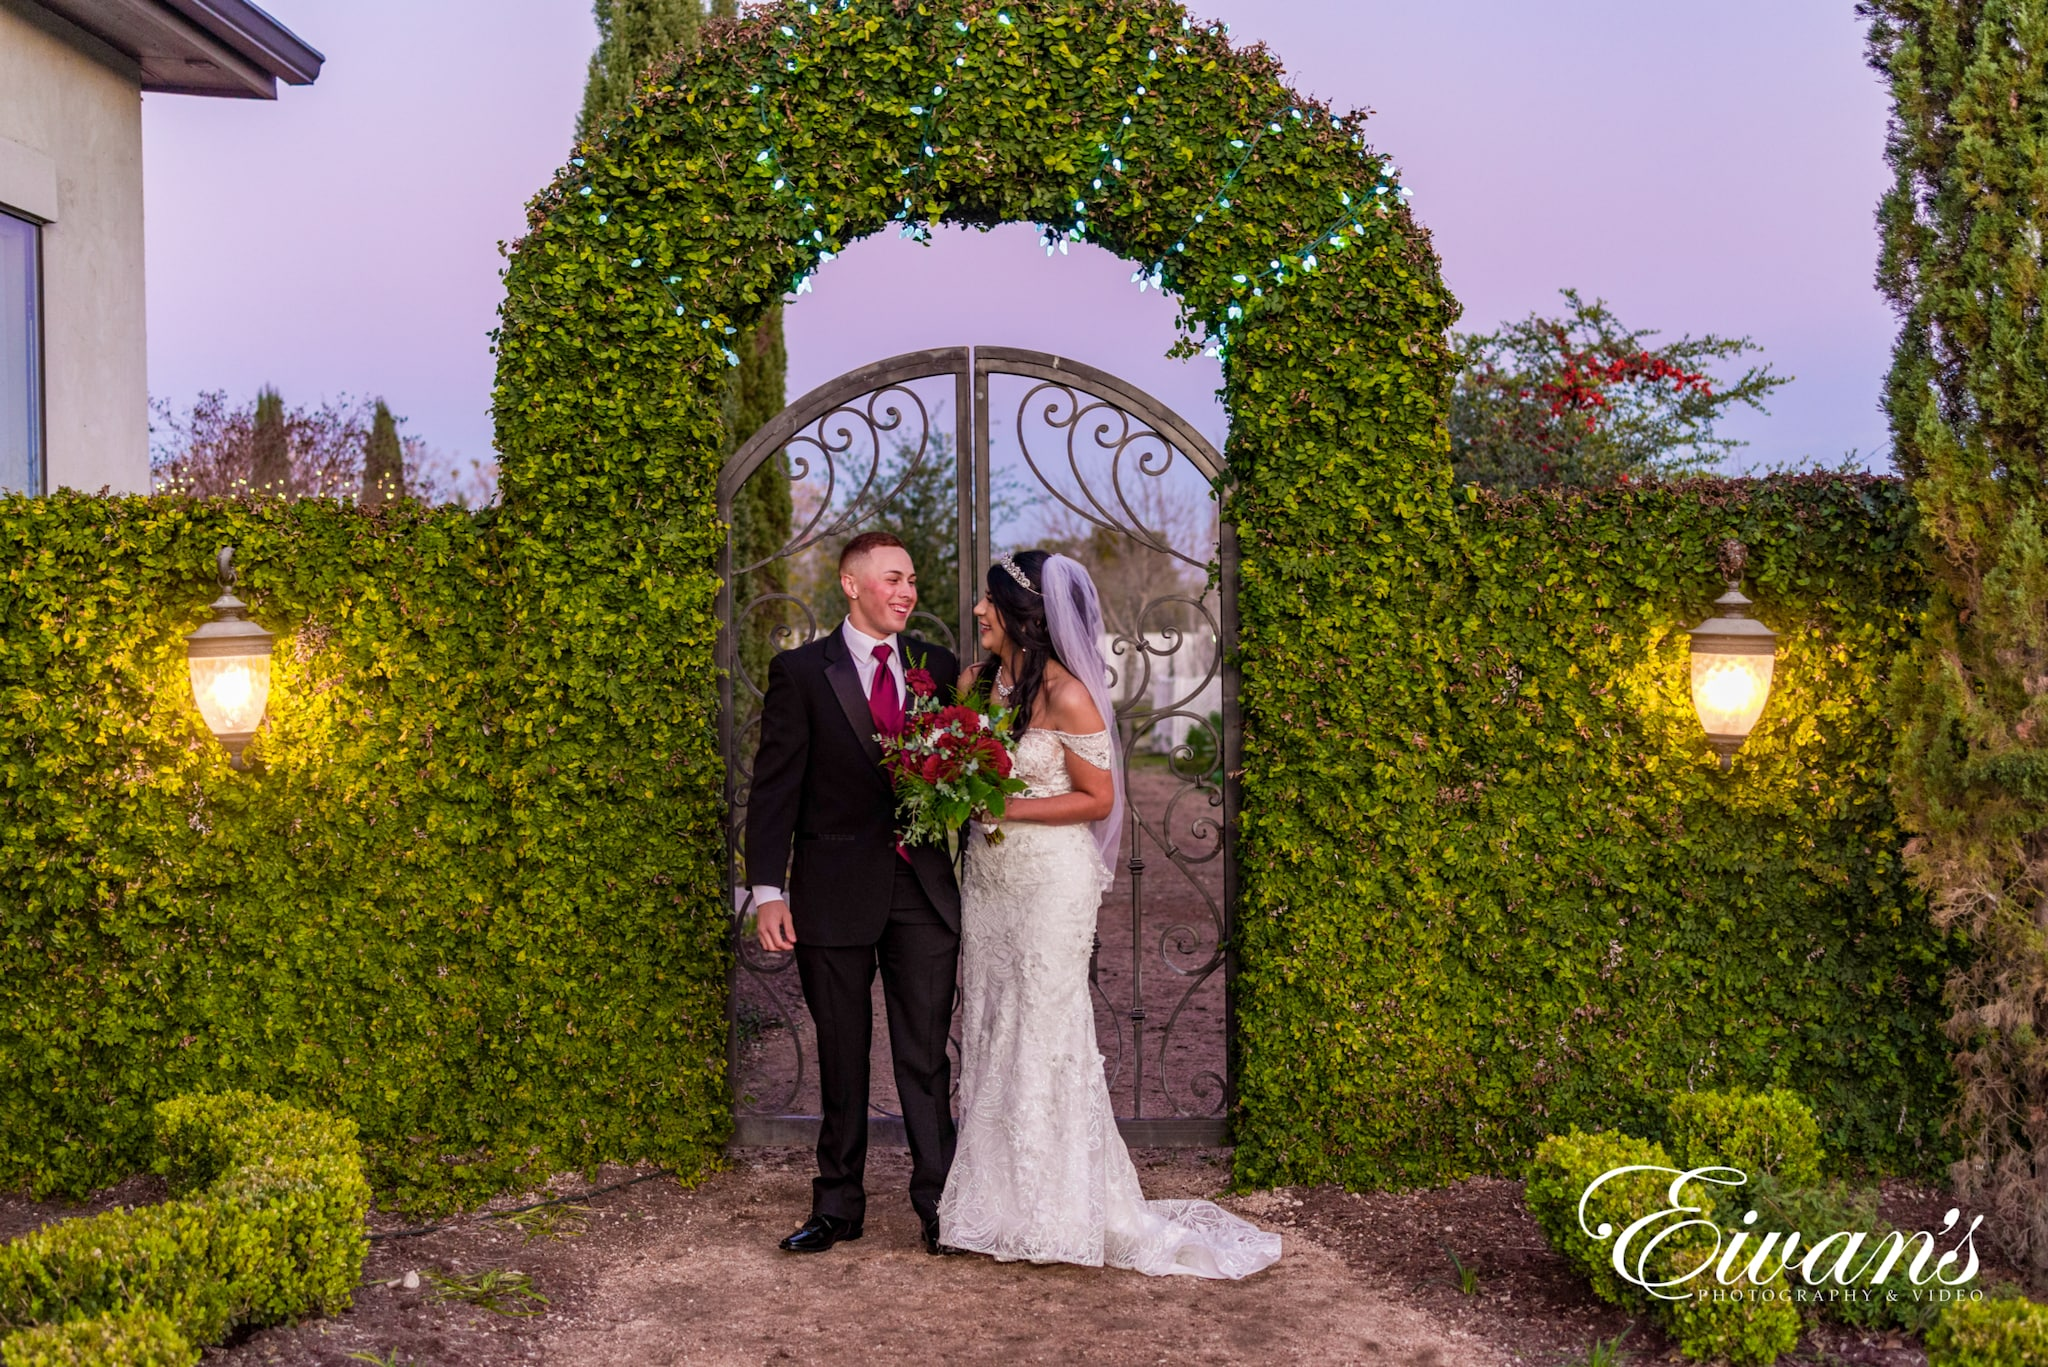 image of a married couple in front of a greenery archway